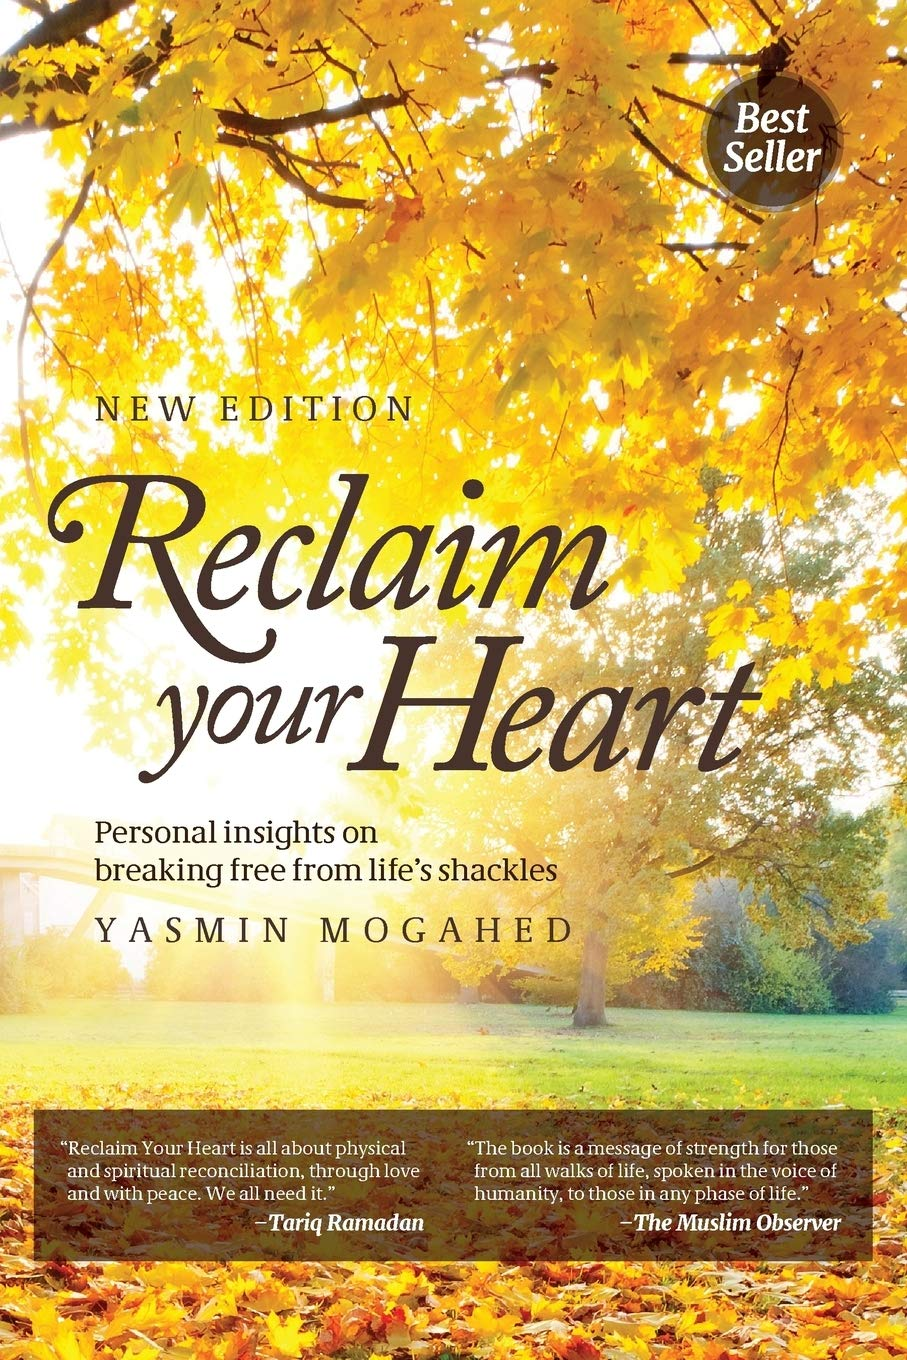 Reclaim Your Heart by FB Publishing